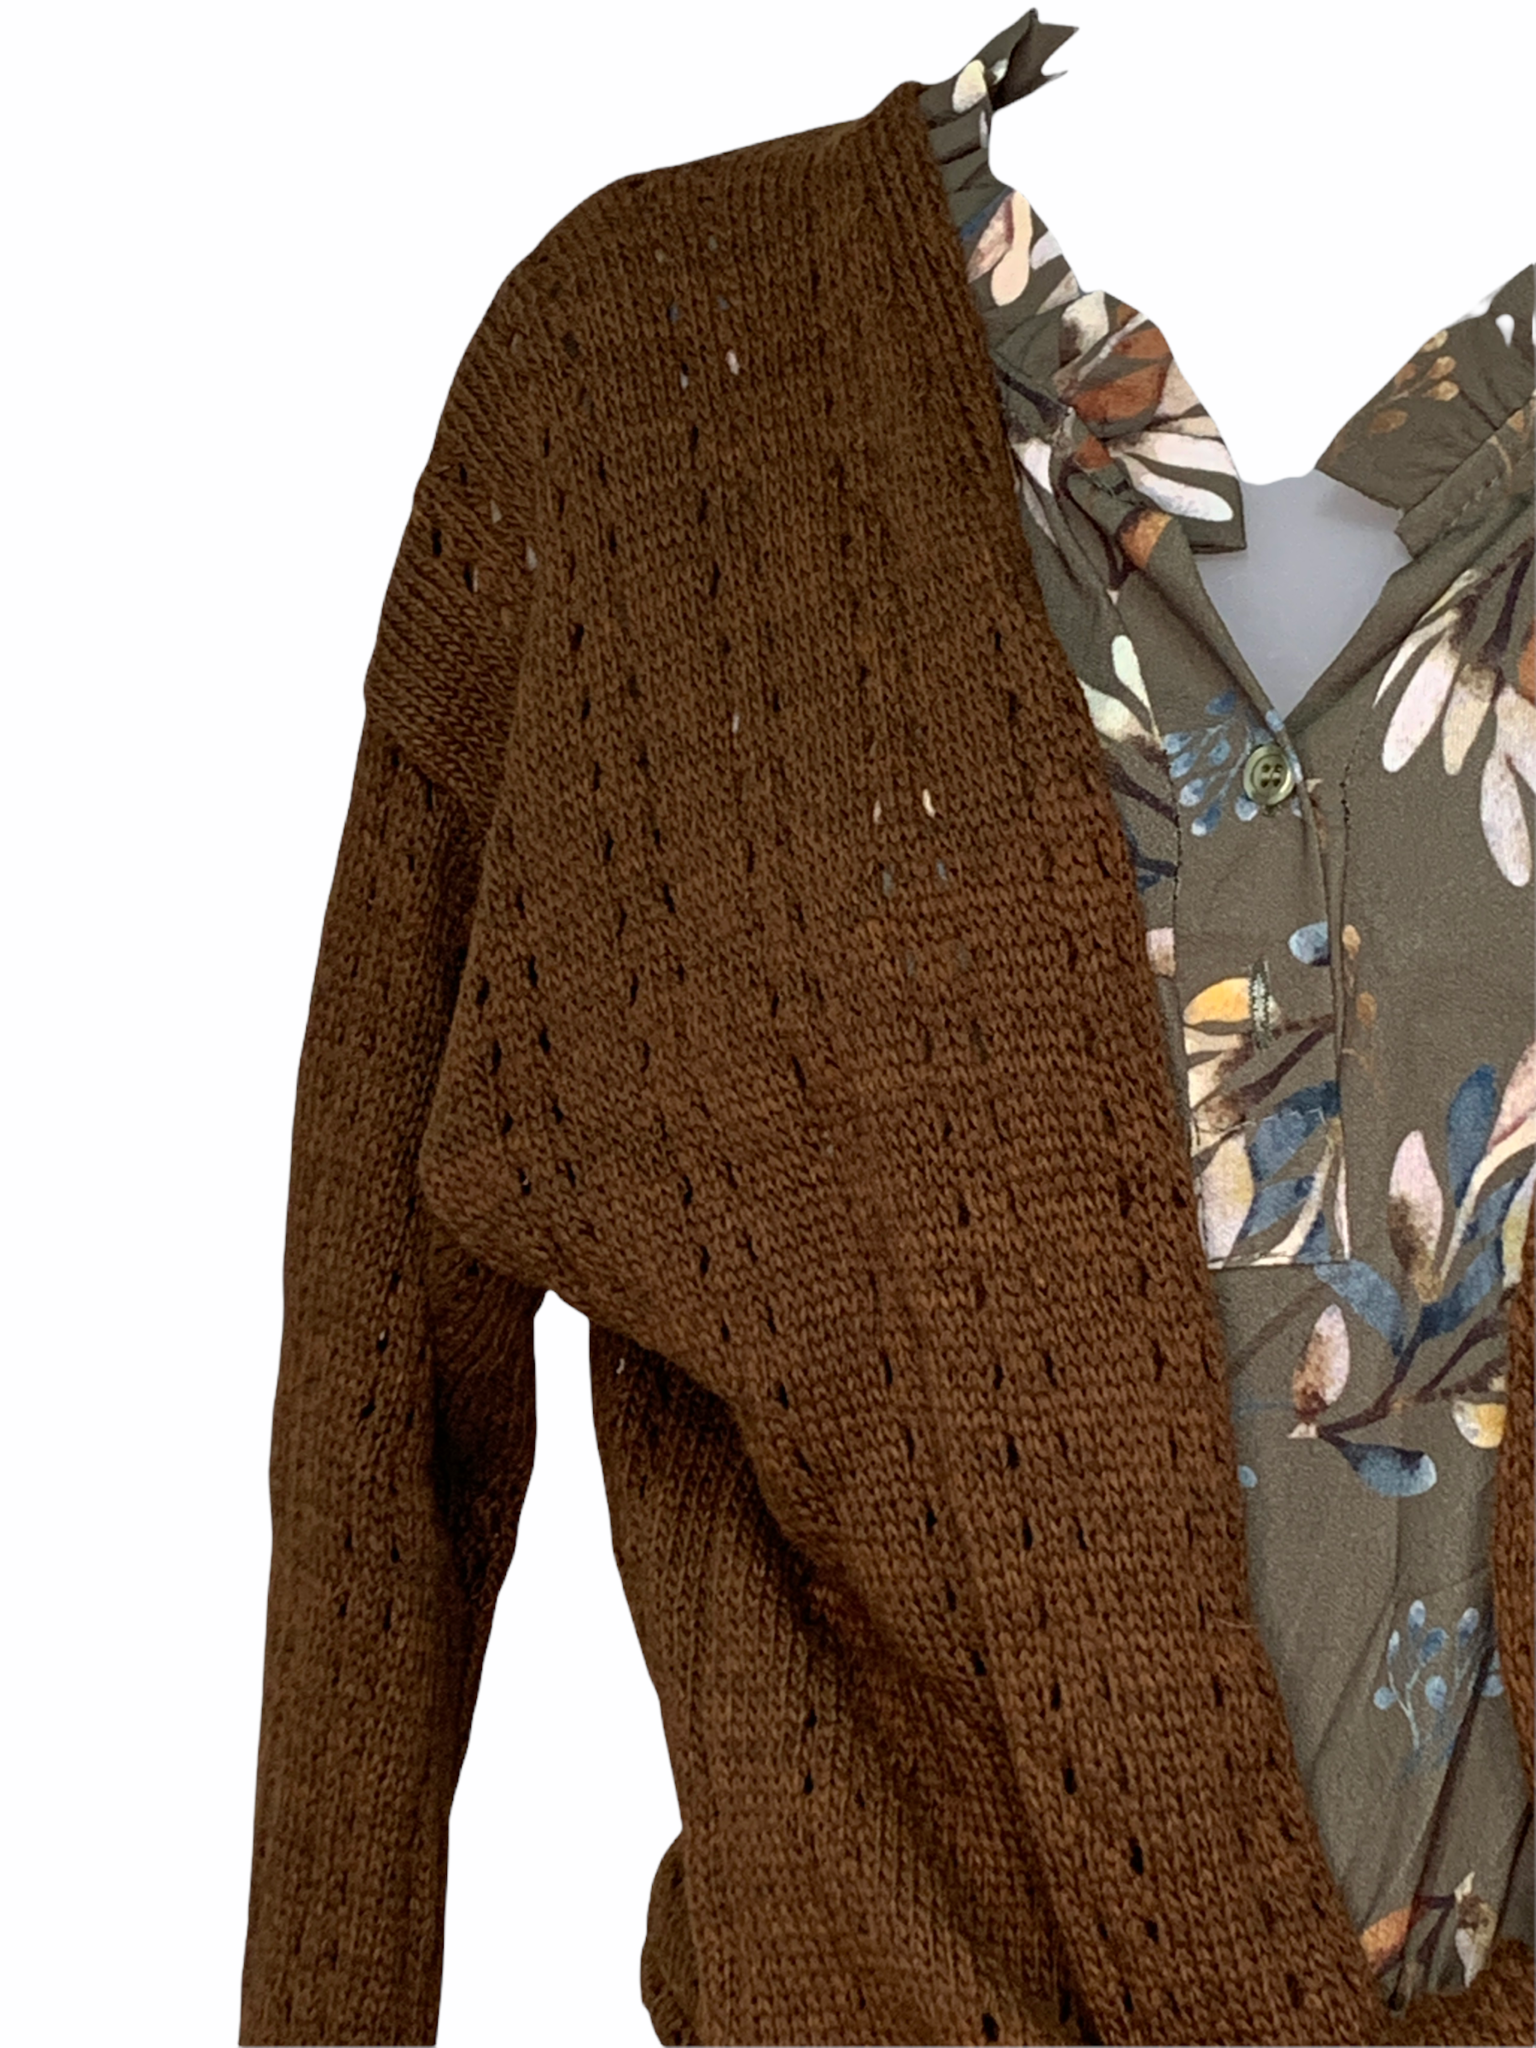 One-Size Knit Cardigan with Tie - Brown